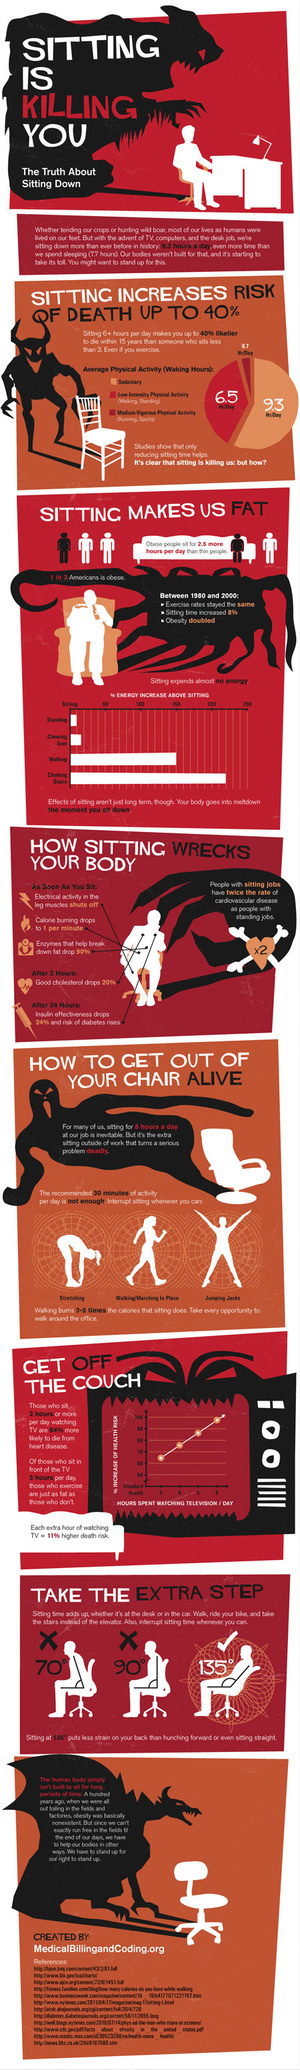 The Sitting Is Killing You Infographic Shows Just How Bad Prolonged Sitting Is